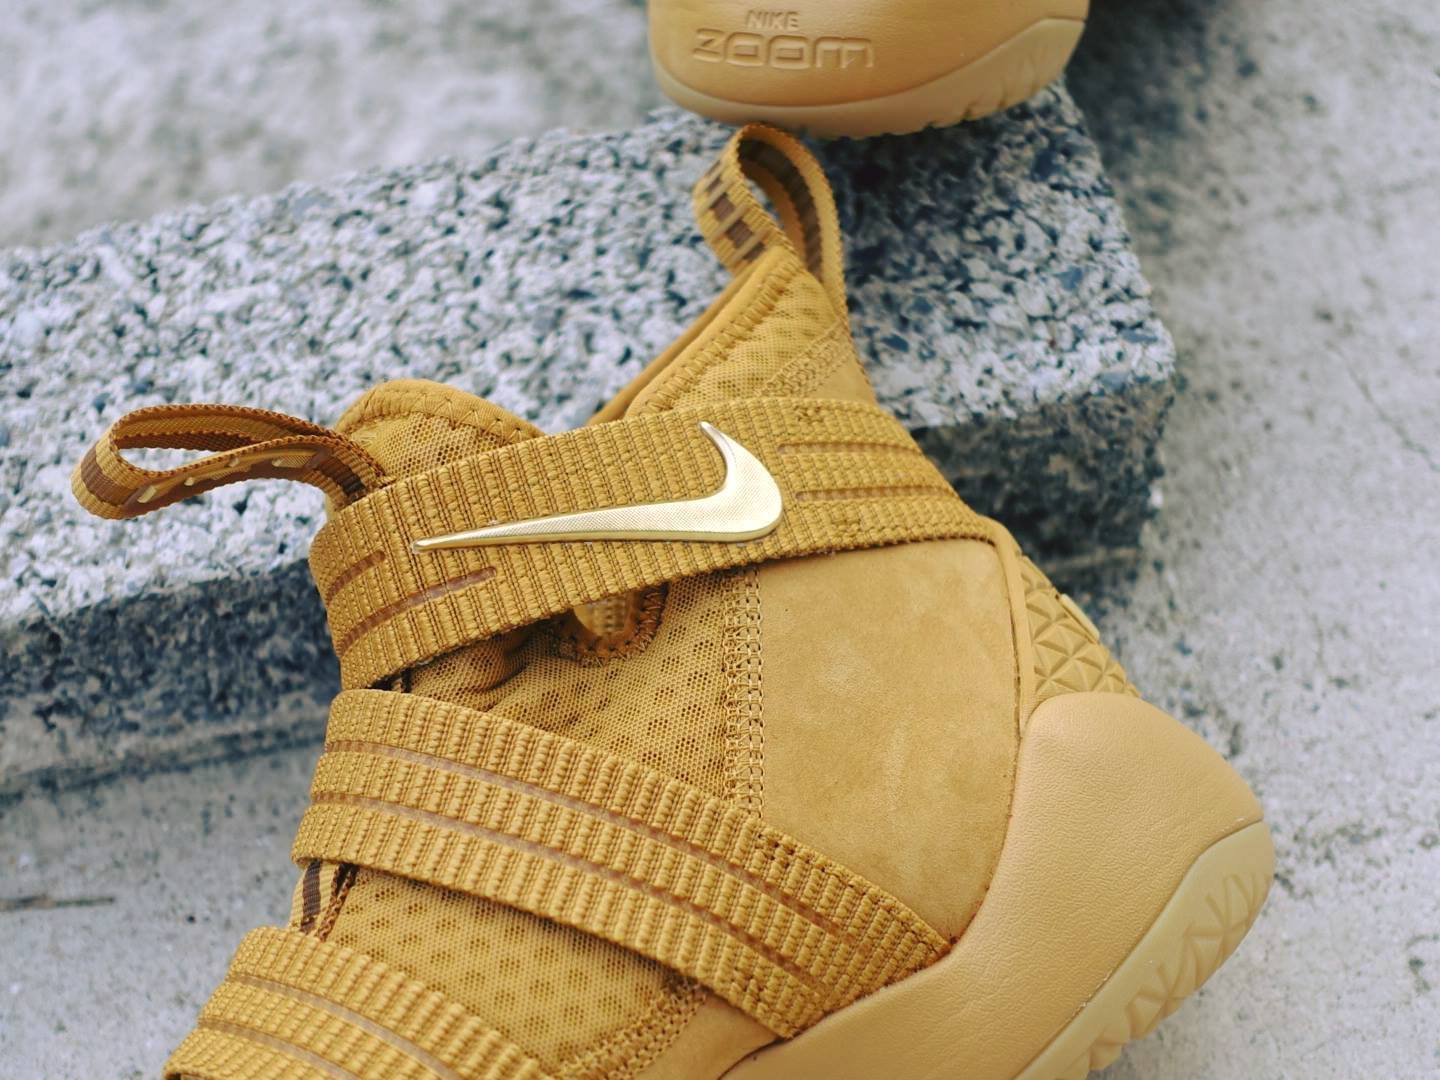 Nike LeBron Soldier 11 SFG Wheat Release Date 897647-700 (5)